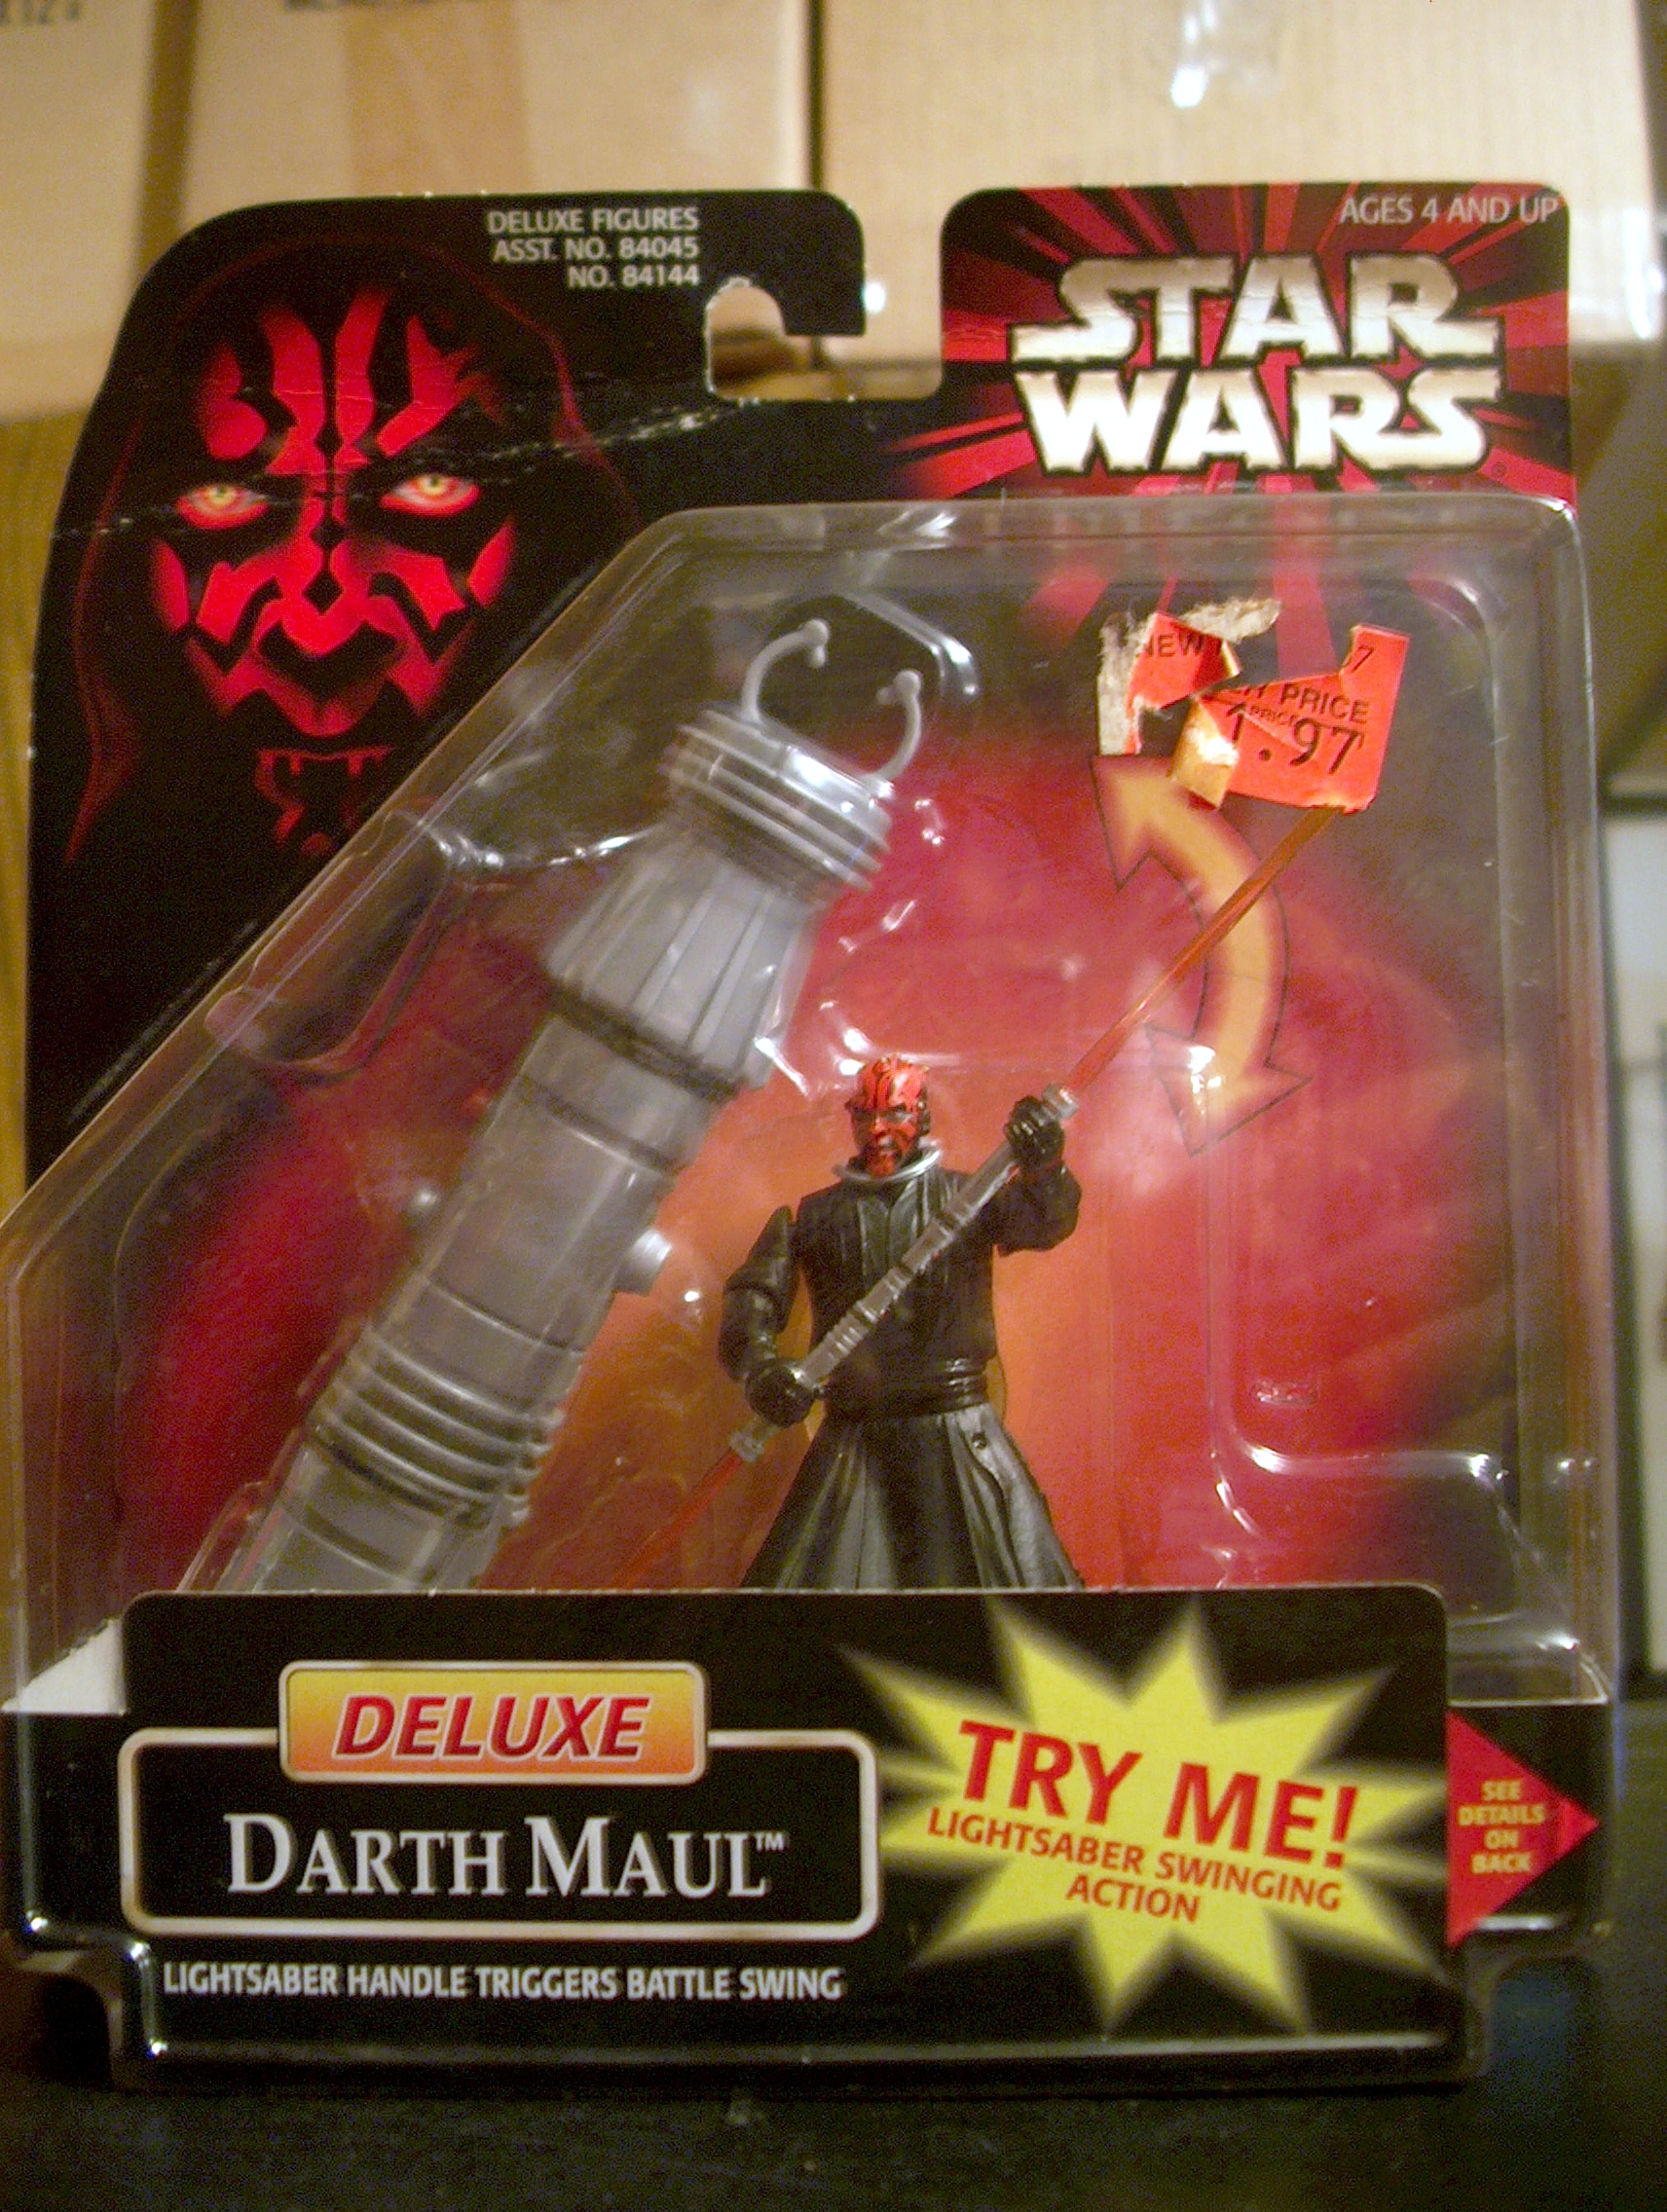 Deluxe Darth Maul - Lightsaber Handle Triggers Battle Swing